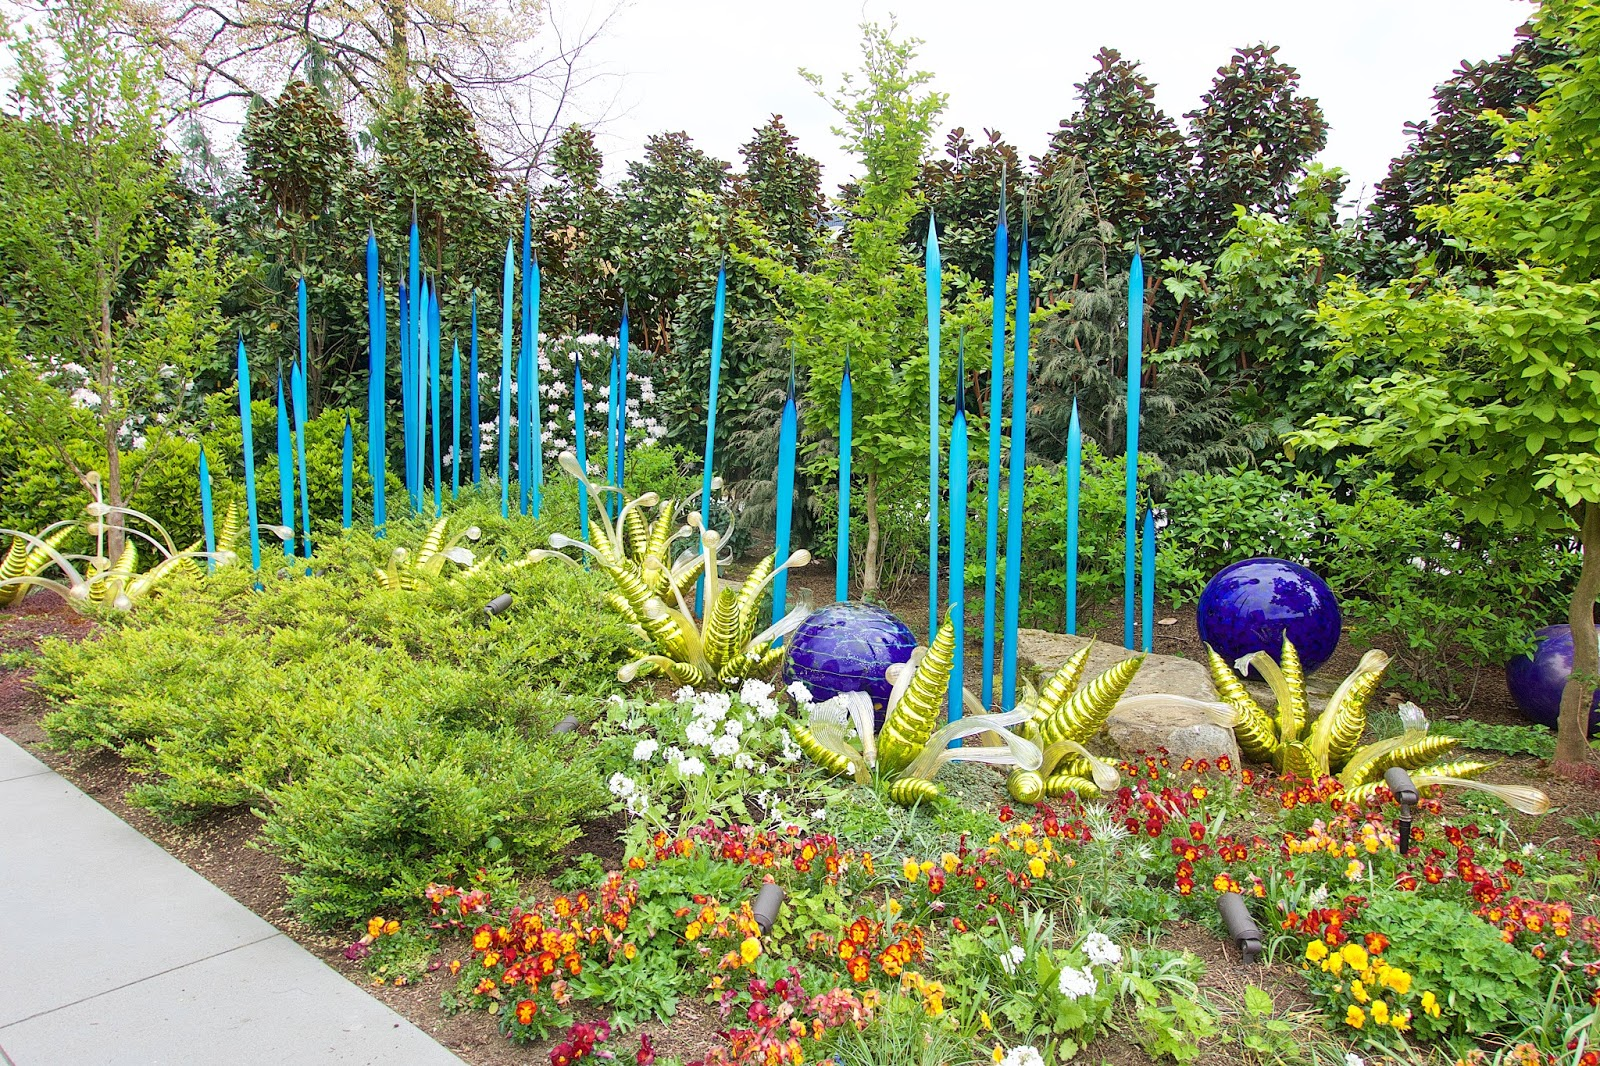 chihuly garden and glass seattle wa do not miss this on your trip - Chihuly Garden And Glass Seattle